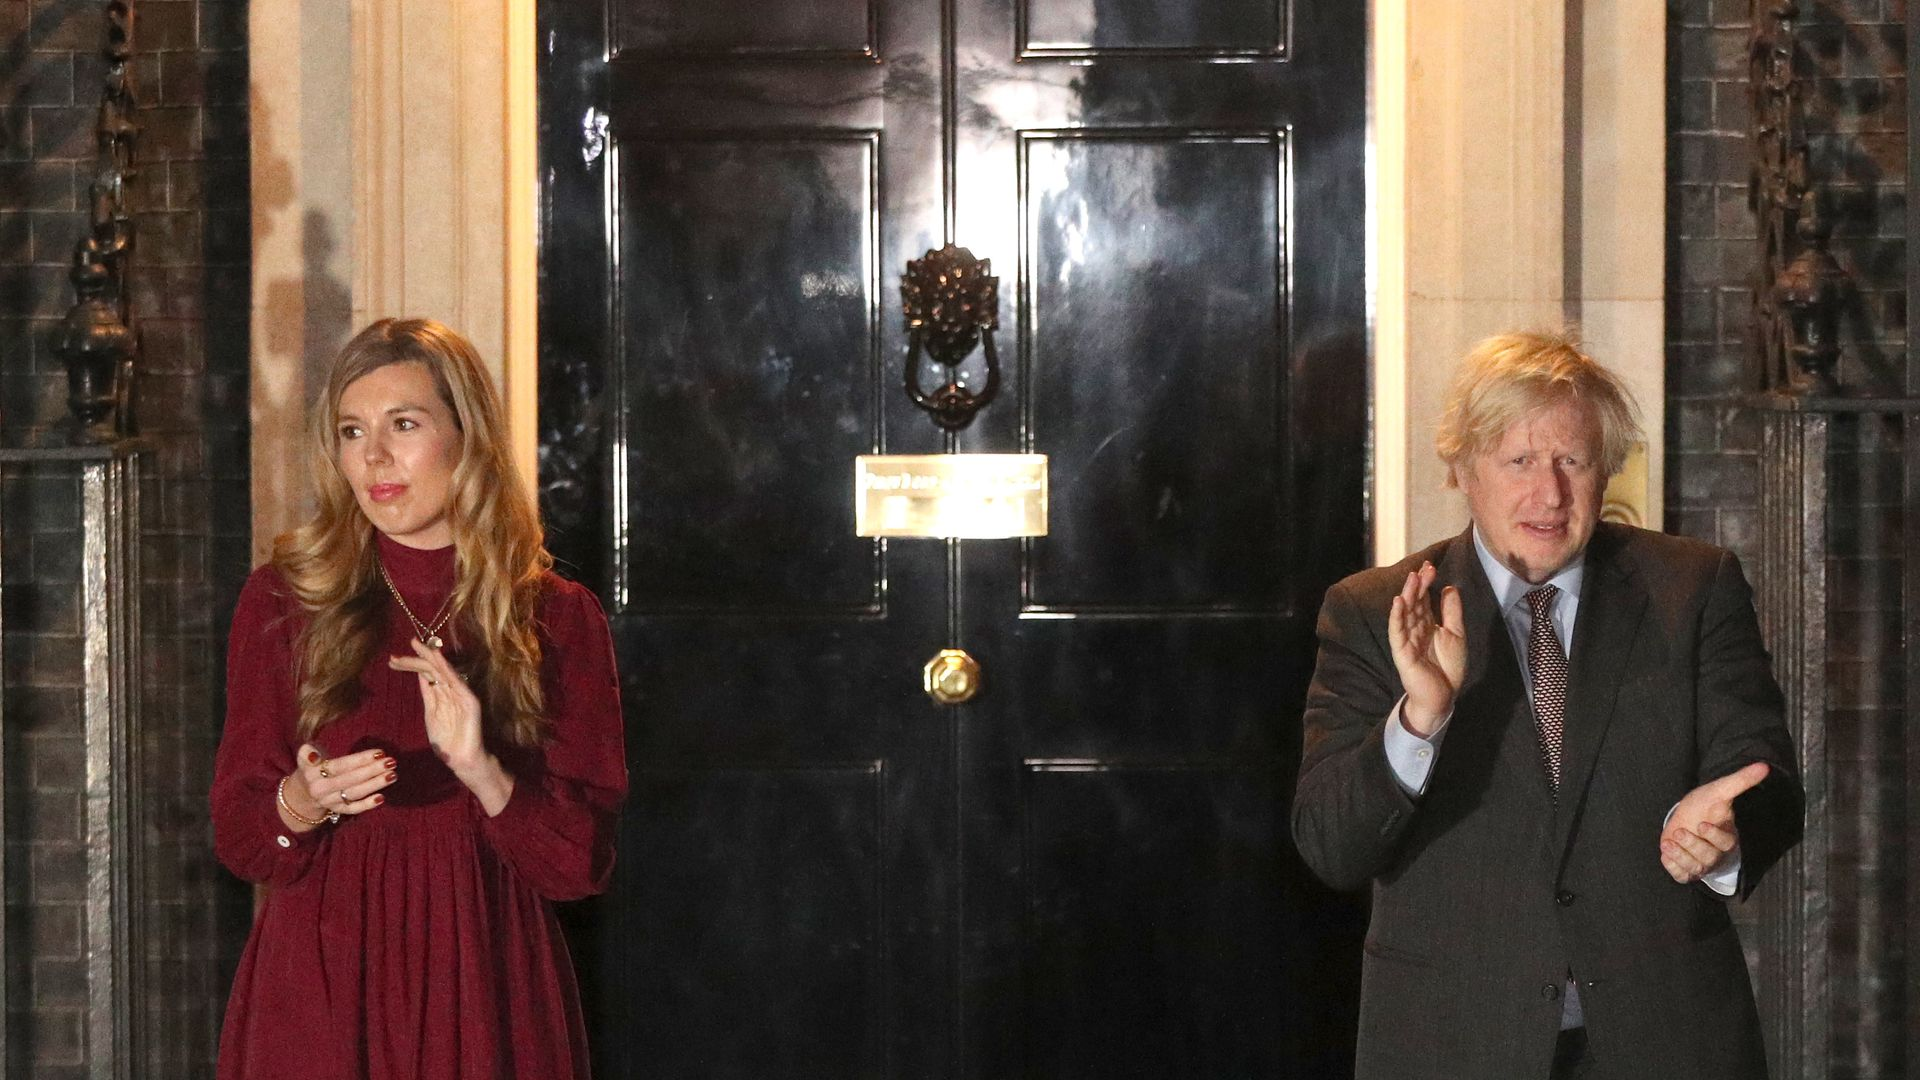 Prime minister Boris Johnson and his partner Carrie Symonds outside 10 Downing Street, London, join in with a nationwide clap in honour of Captain Sir Tom Moore - Credit: PA